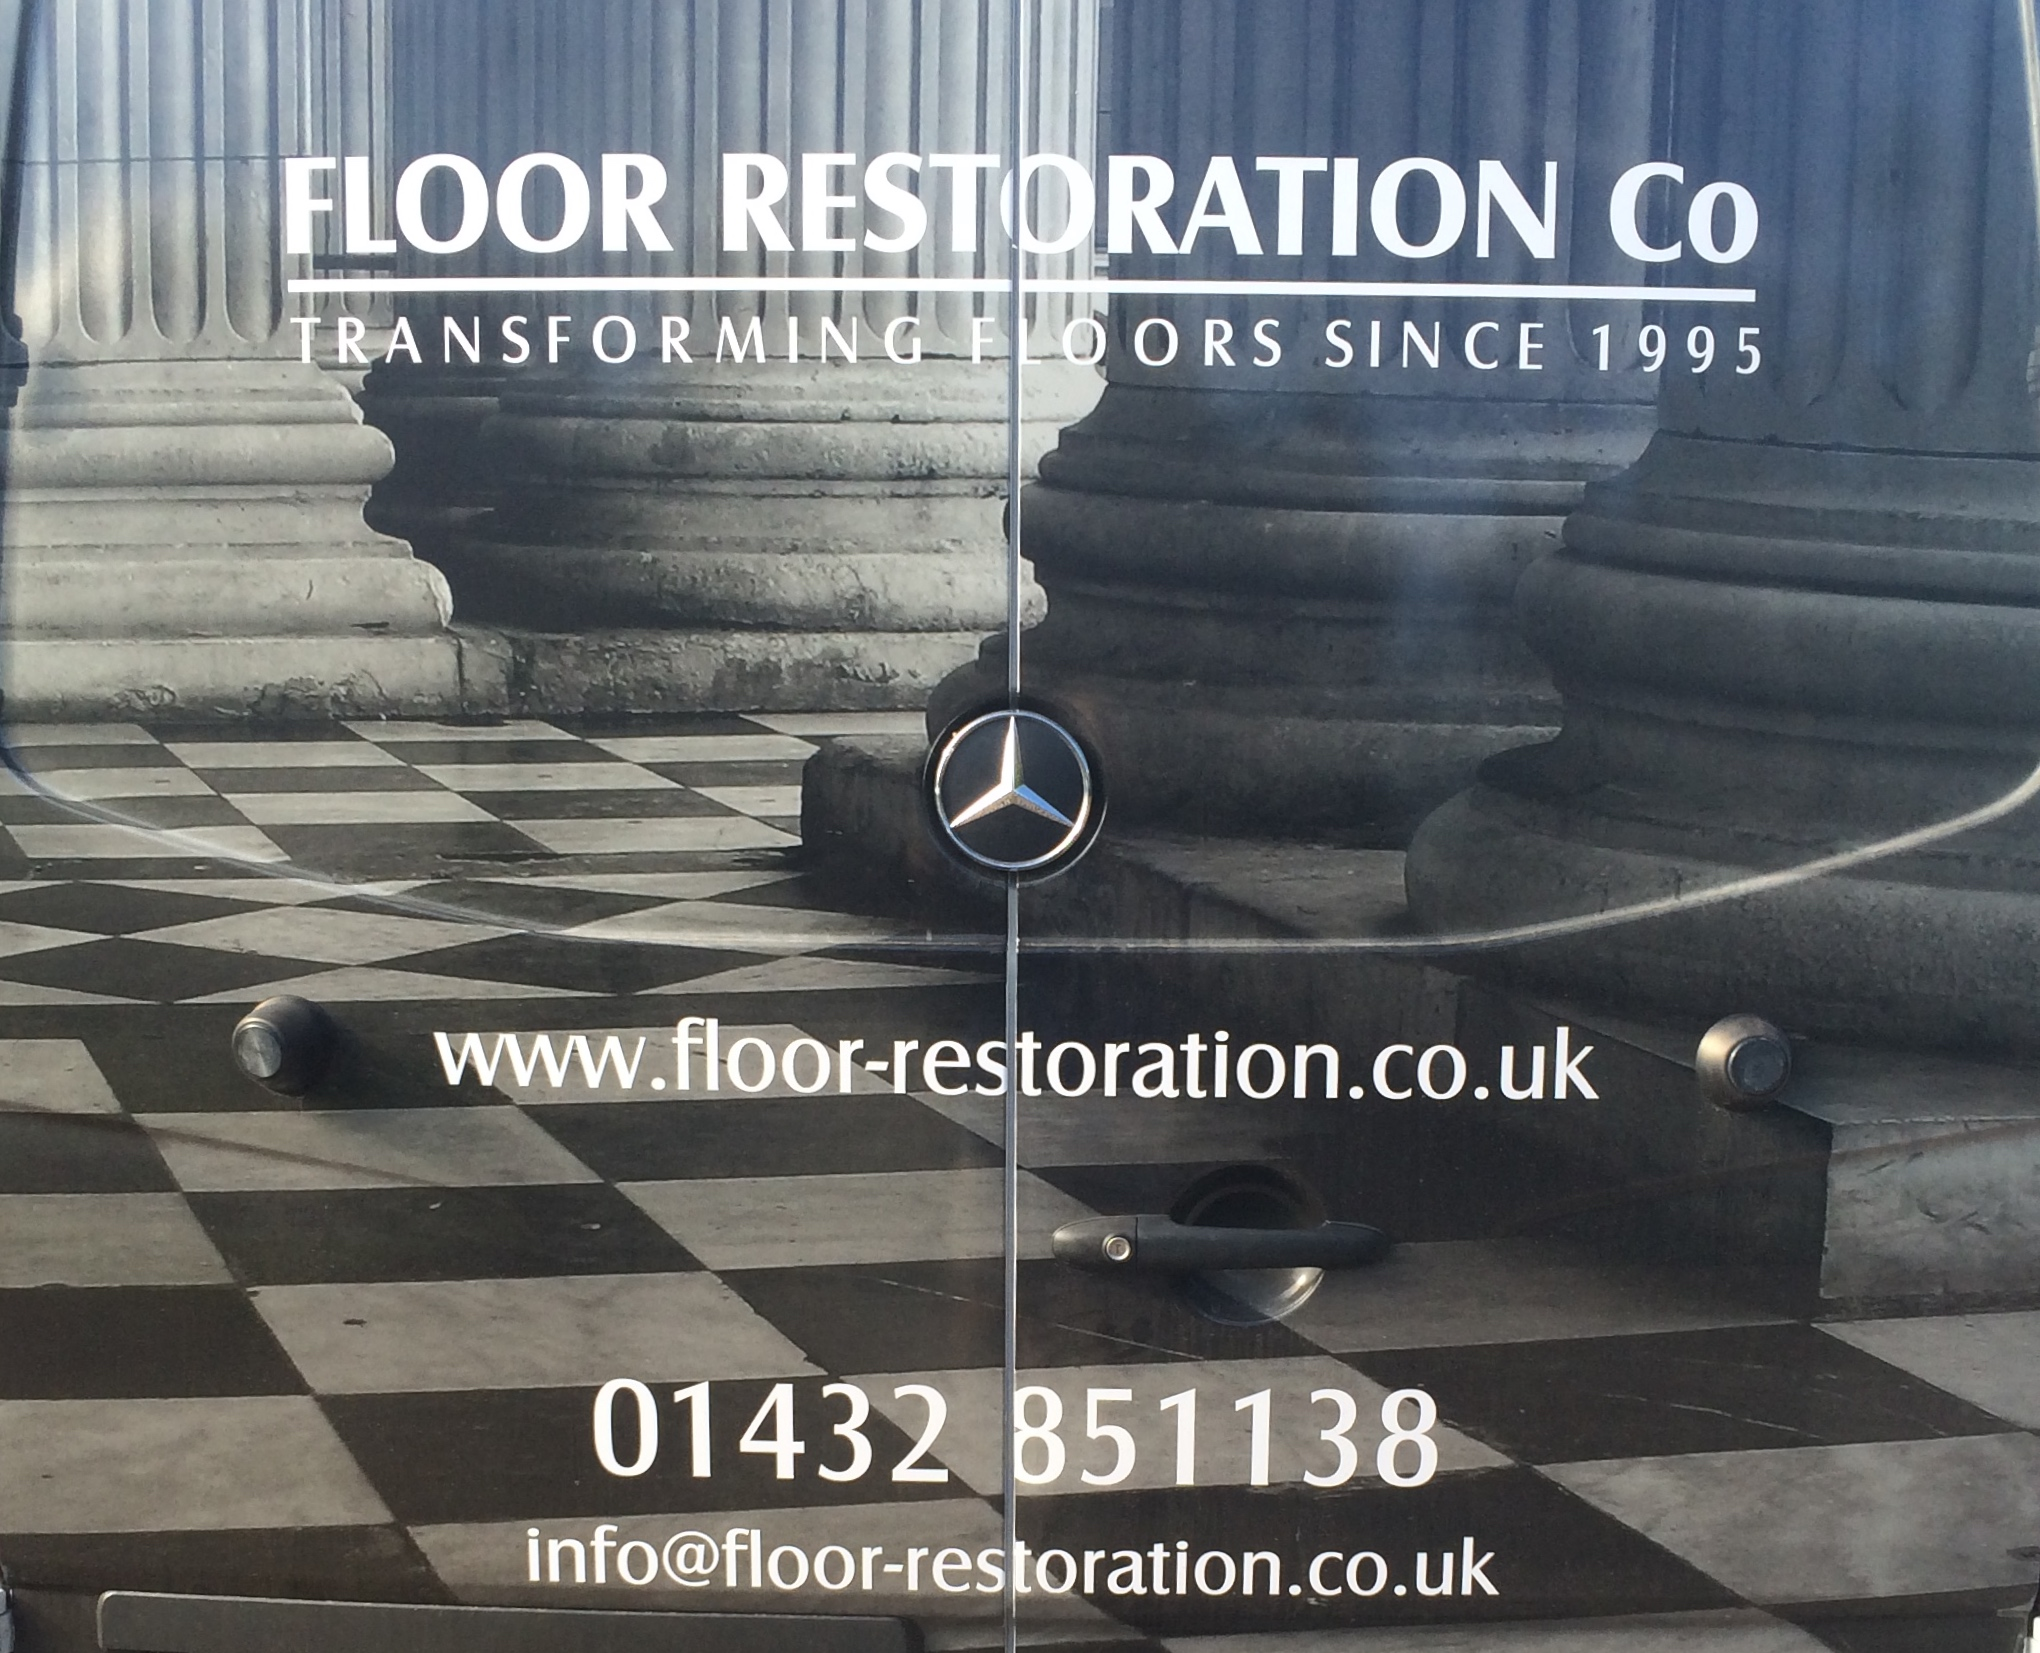 The Floor Restoration Company With Expertise Ltd